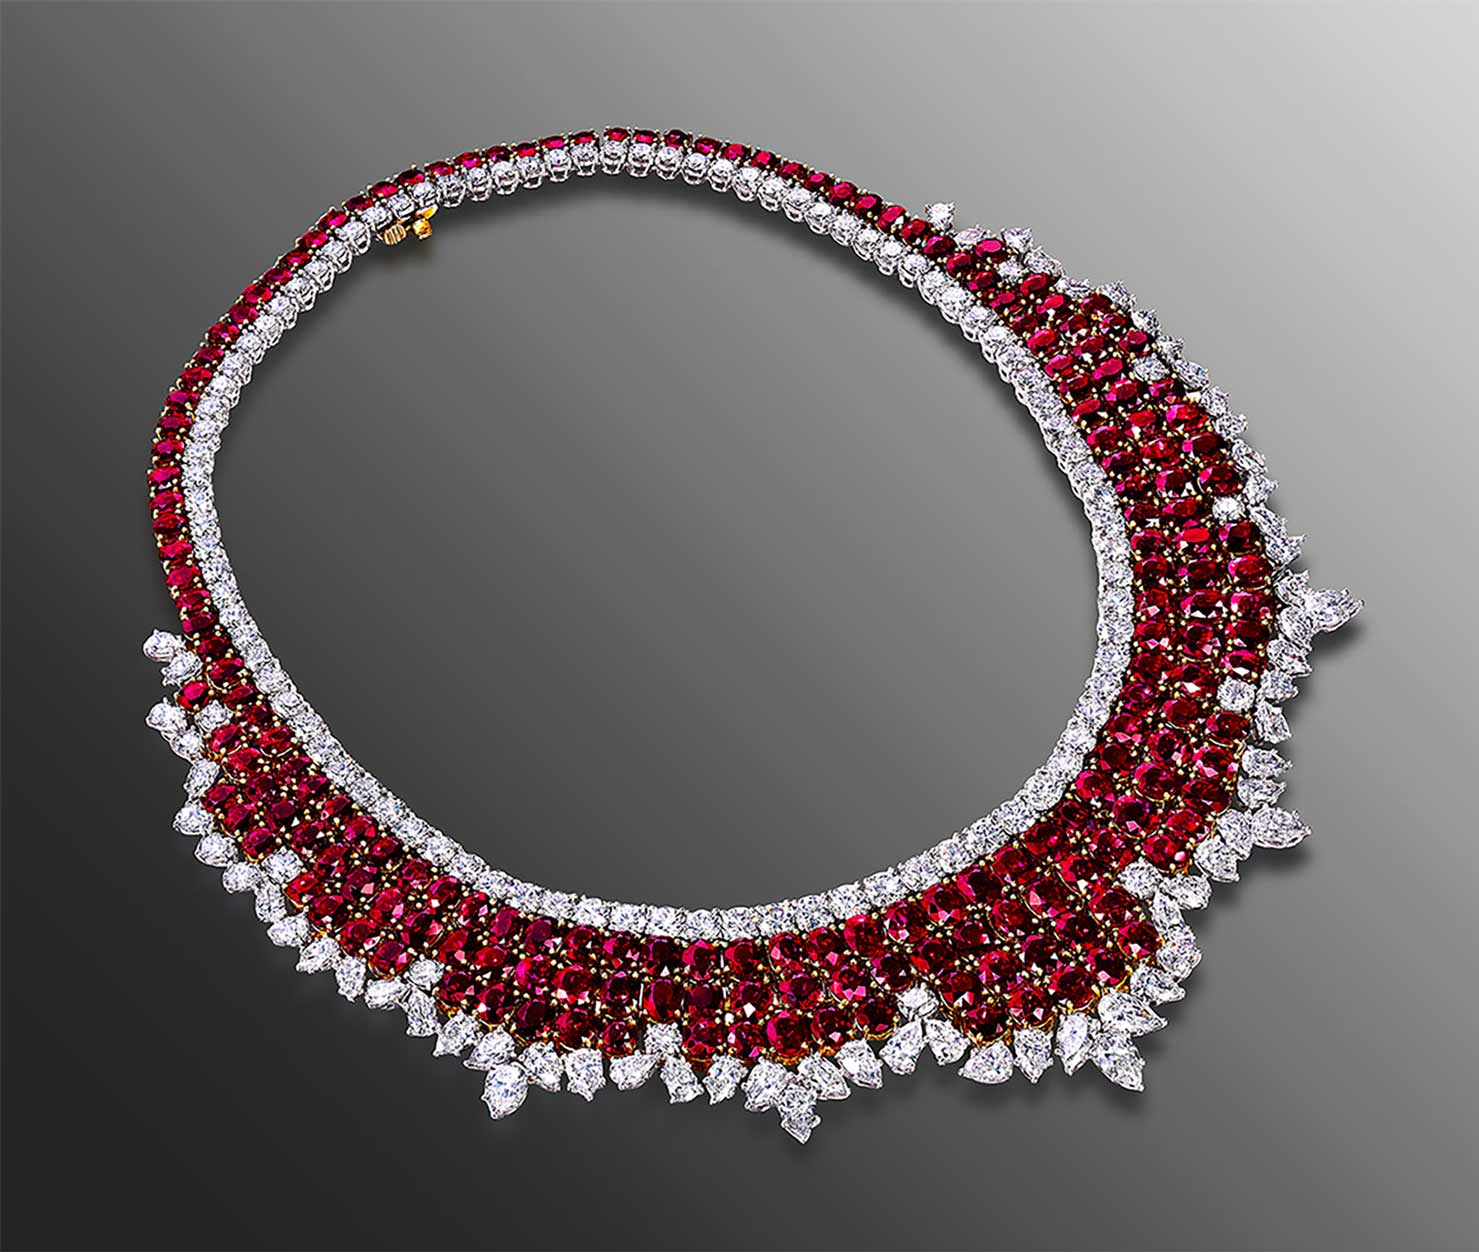 necklace Burma rubies plat diamonds.